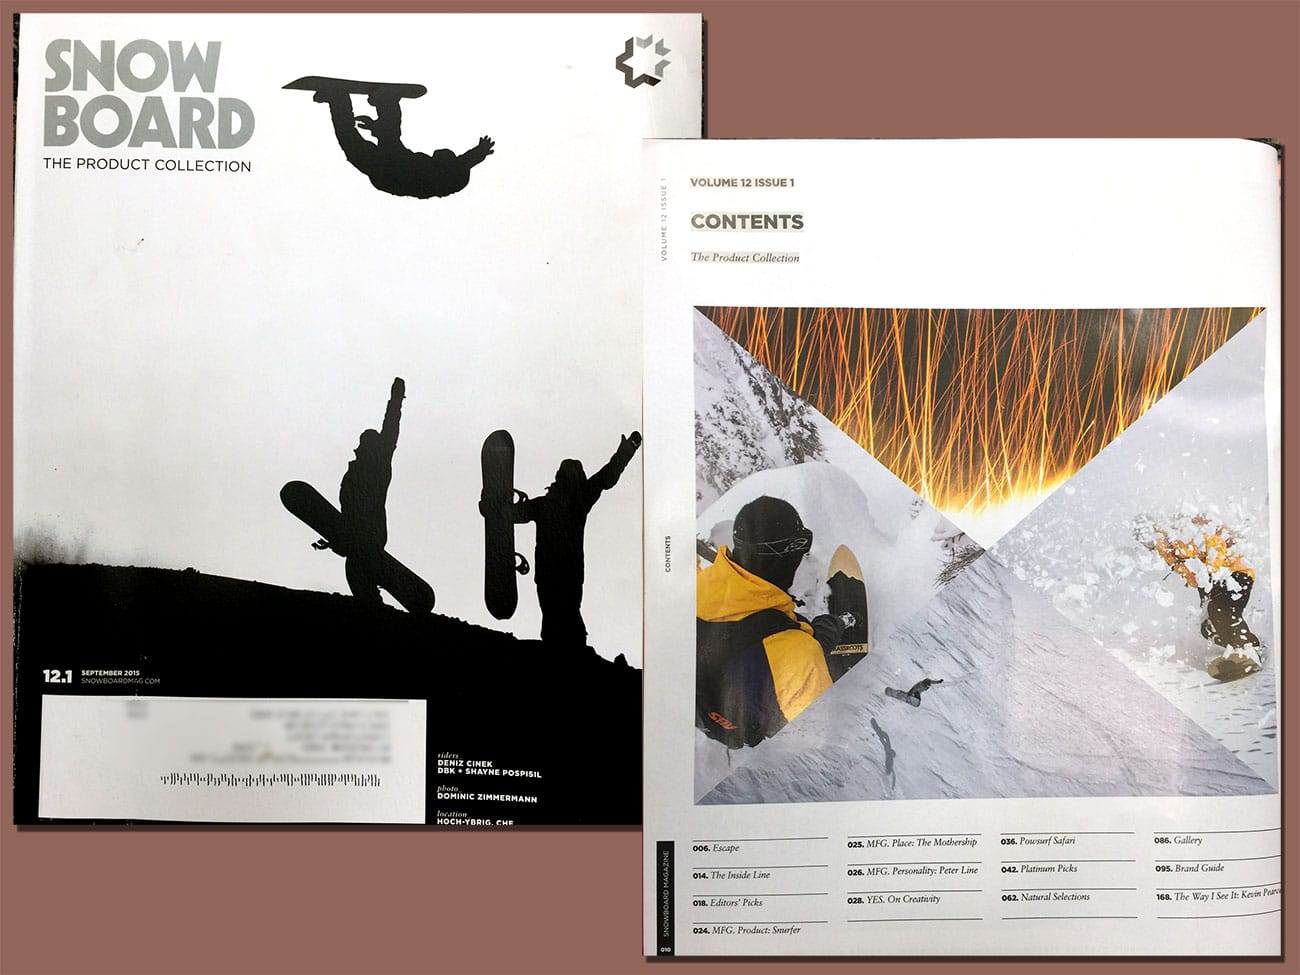 Snowboard Magazine Cover and Index page featuring Grassroots Powdersurfing riders Jeremy Jensen, Gray Thompson and Eric Messier.